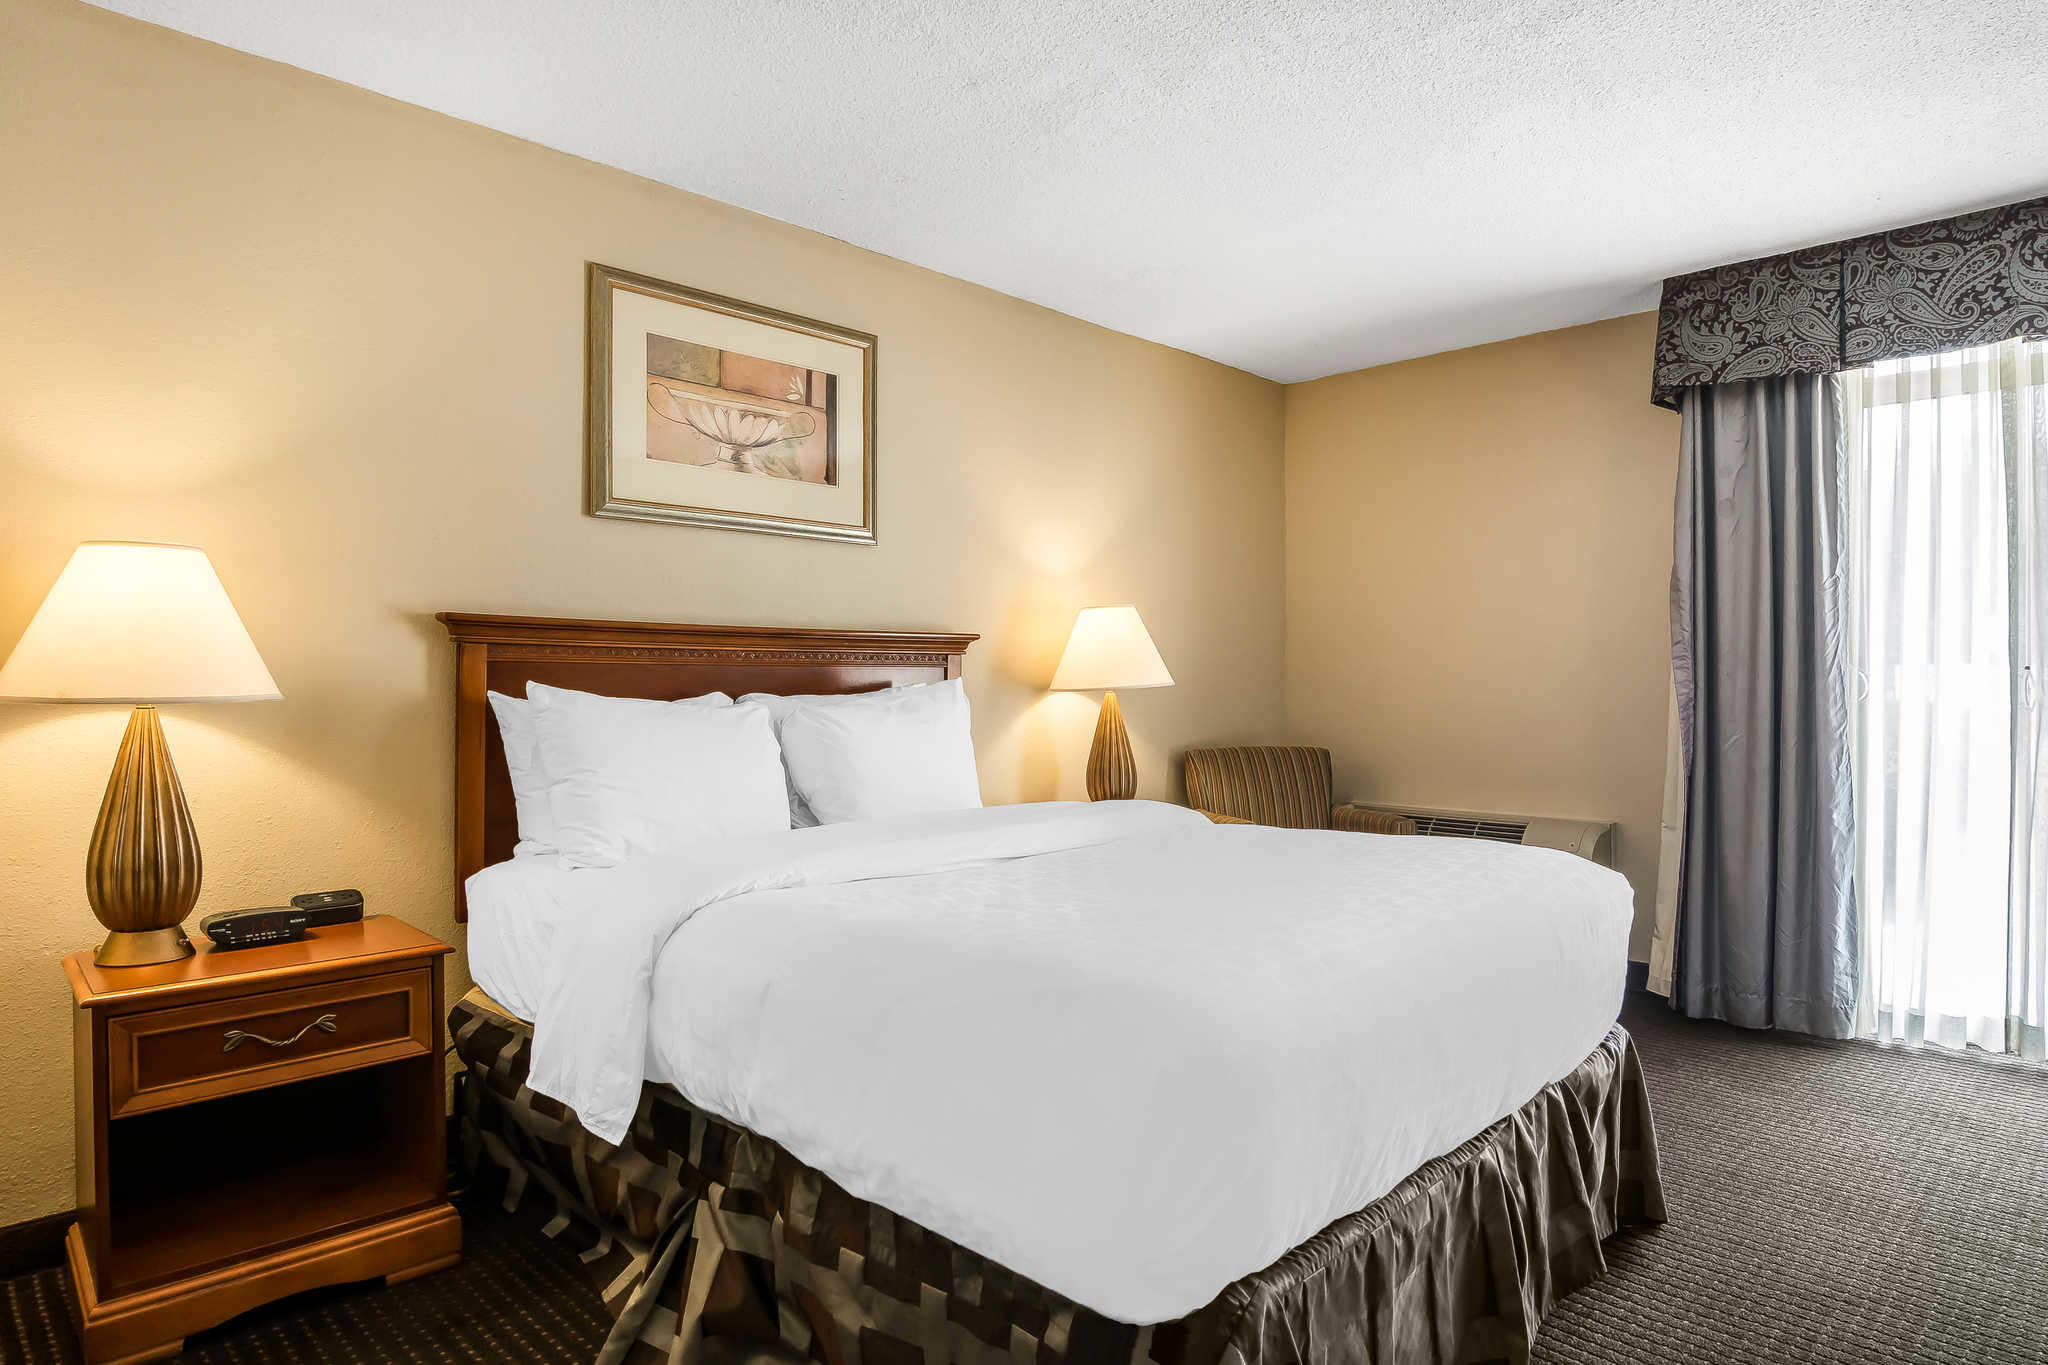 Clarion hotel coupons 2019